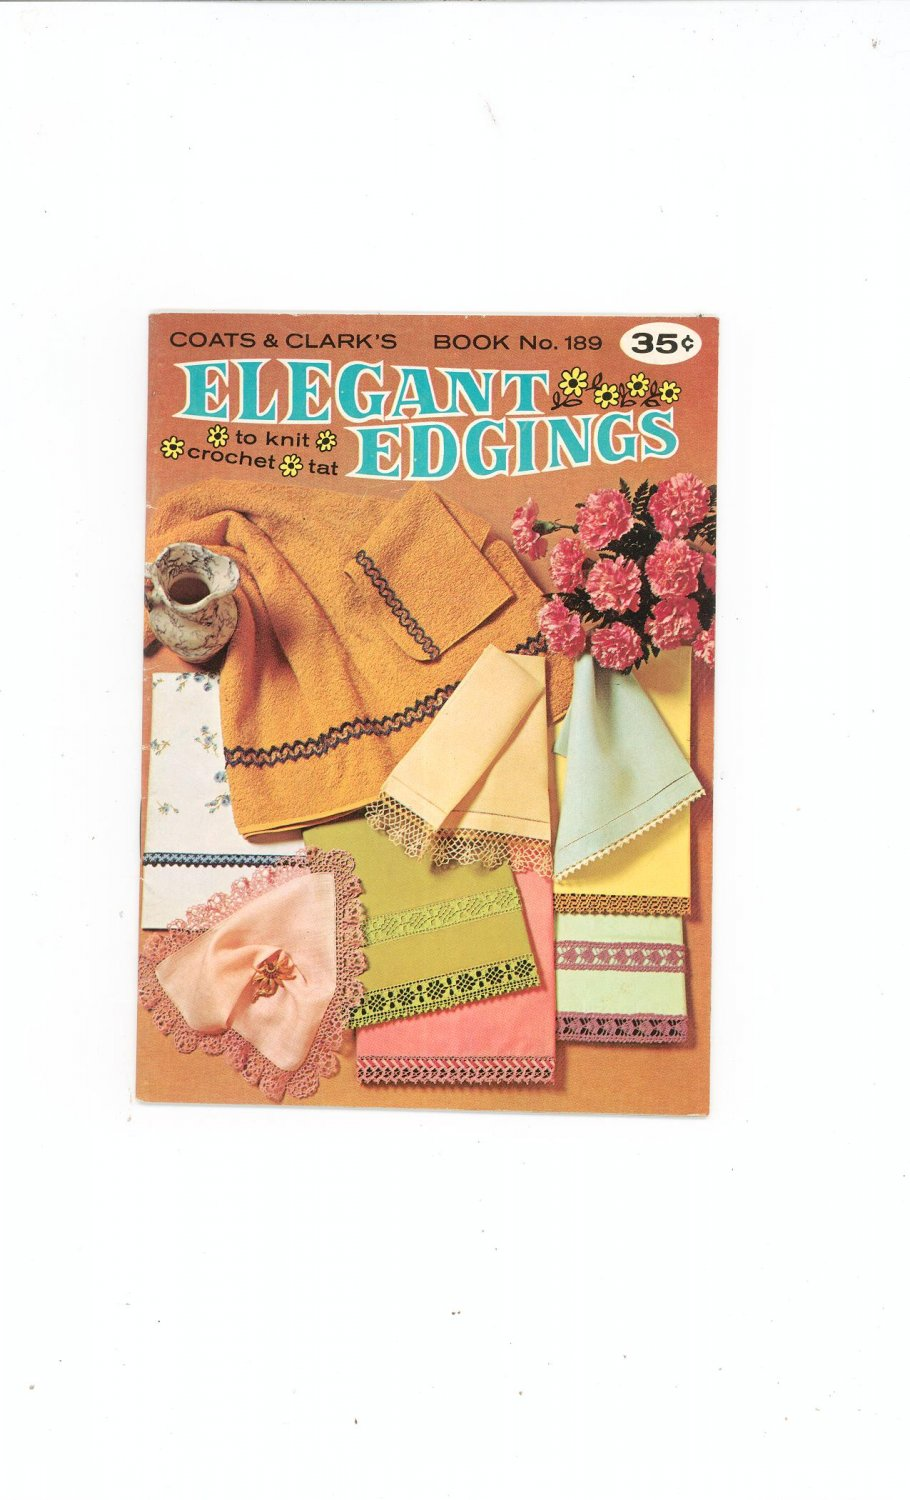 Vintage Coats & Clark's Book No. 189 Elegant Edgings Knit Crochet Tat First Edition